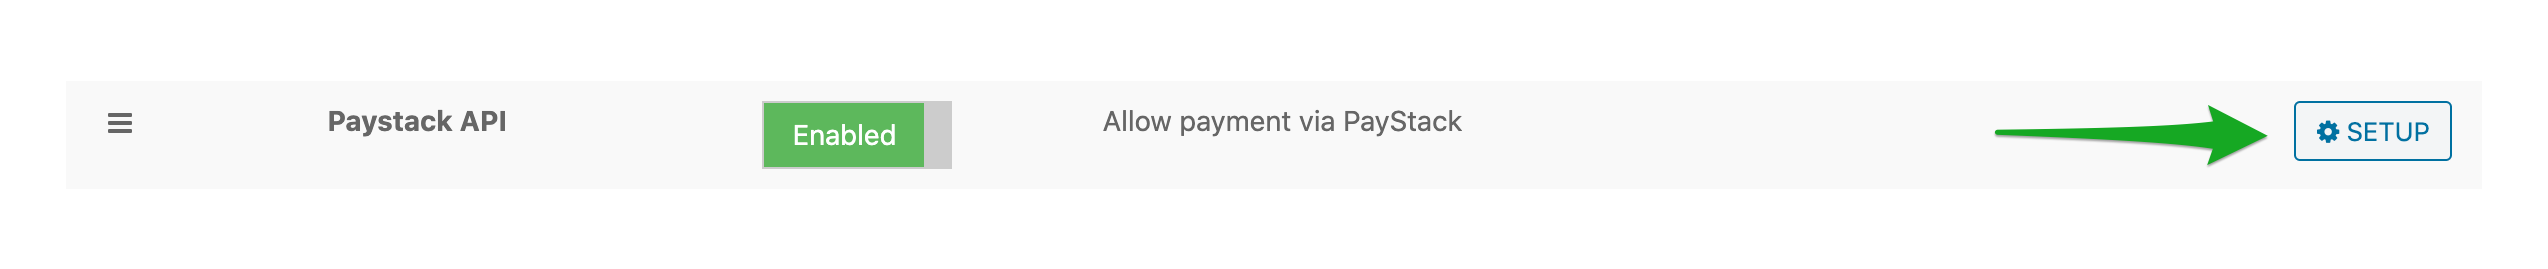 Set up Paystack Payment in WPFreelance Theme - Paystack setup